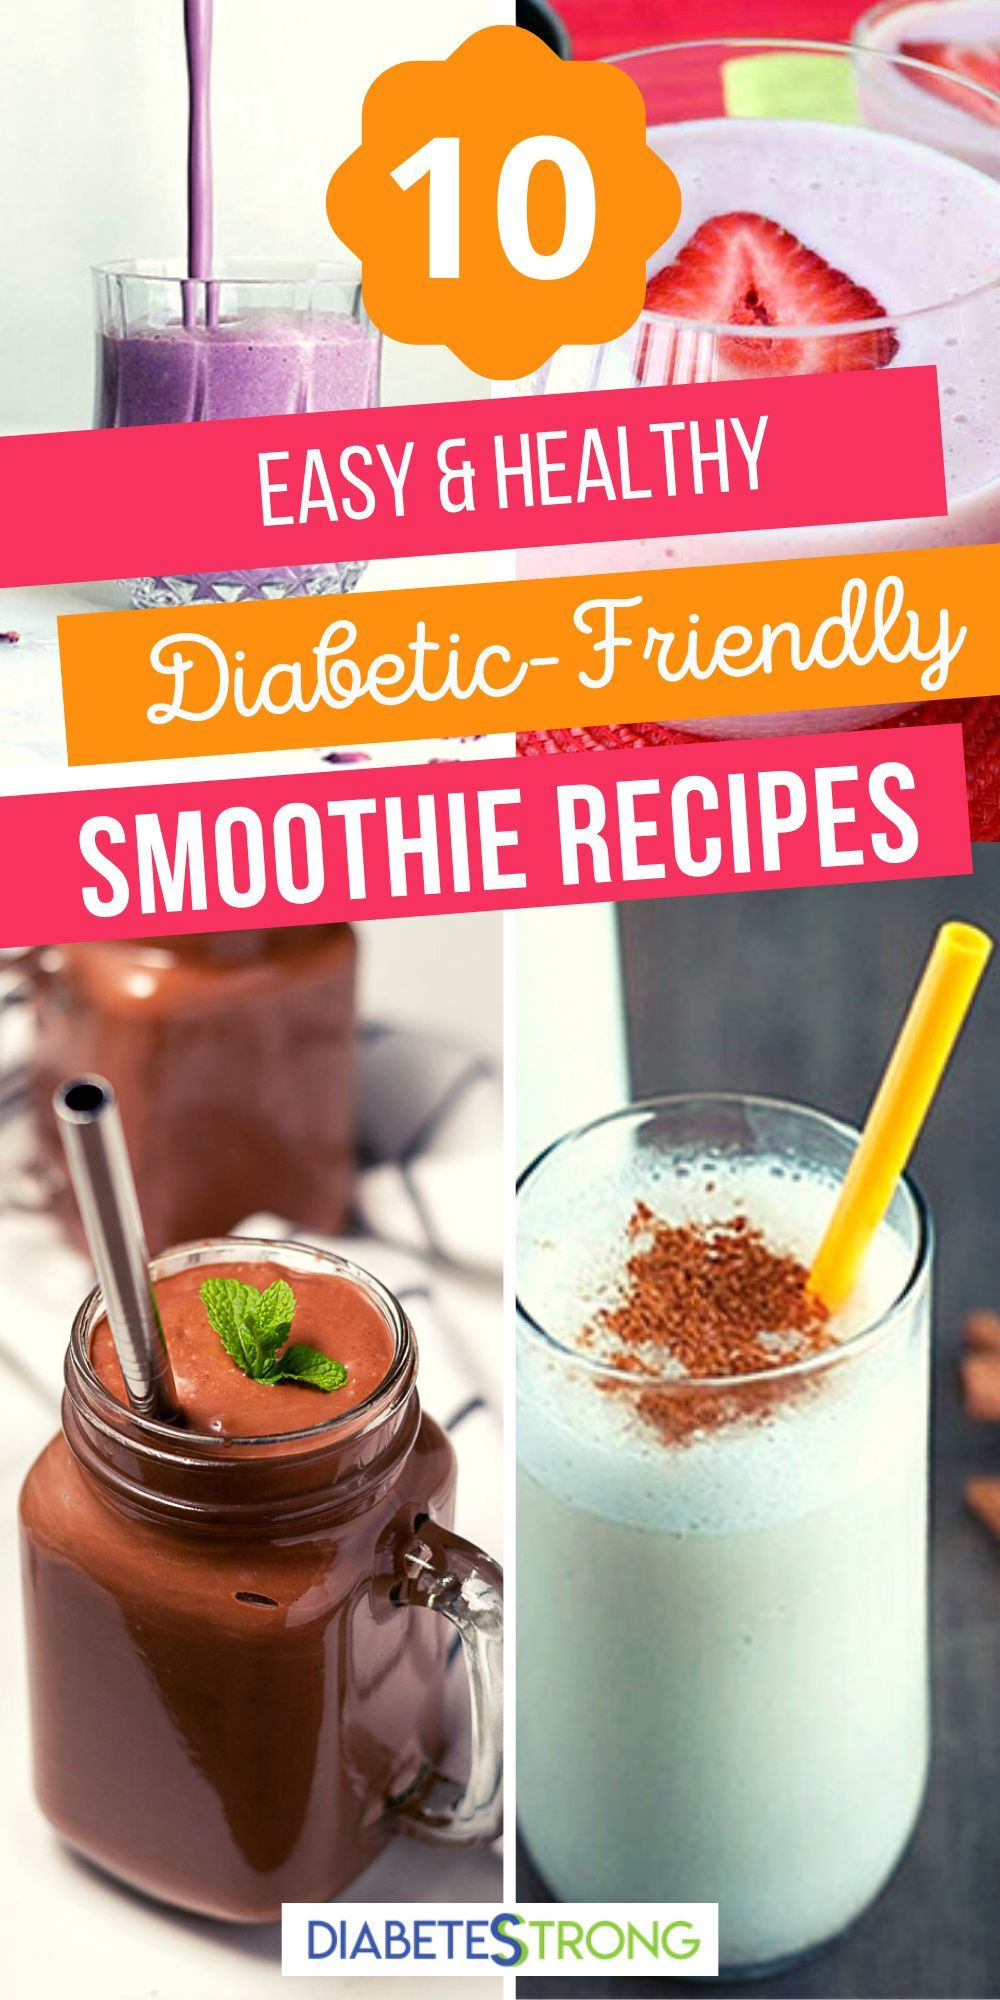 10 Low Carb Smoothies For Diabetics Diabetes Strong In 2020 Diabetic Smoothies Healthy Protein Smoothies Low Carb Smoothies